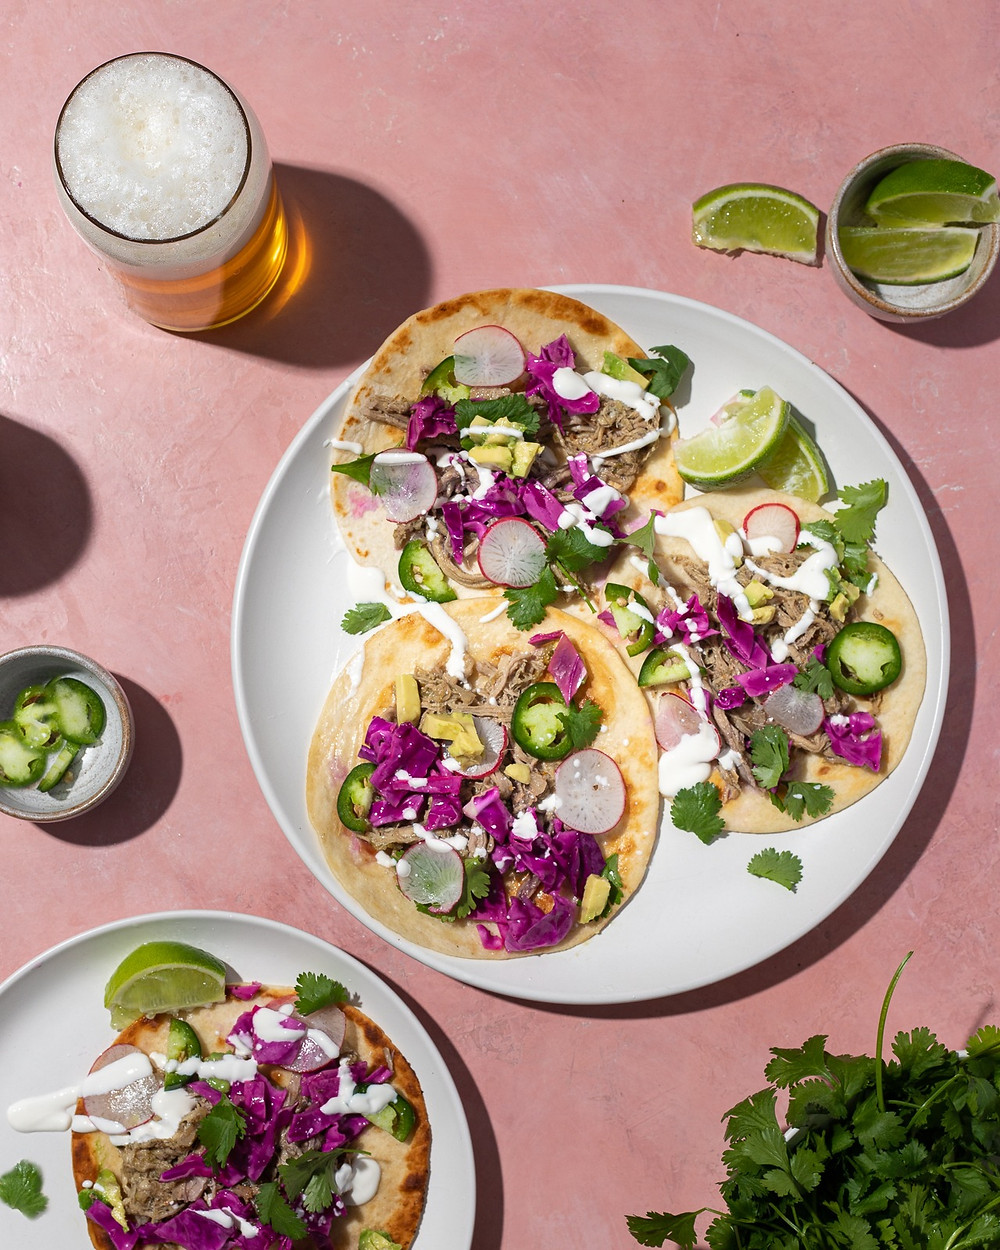 Tacos with red cabbage, cilantro, carnitas, lime juice and a little sour cream on pink background